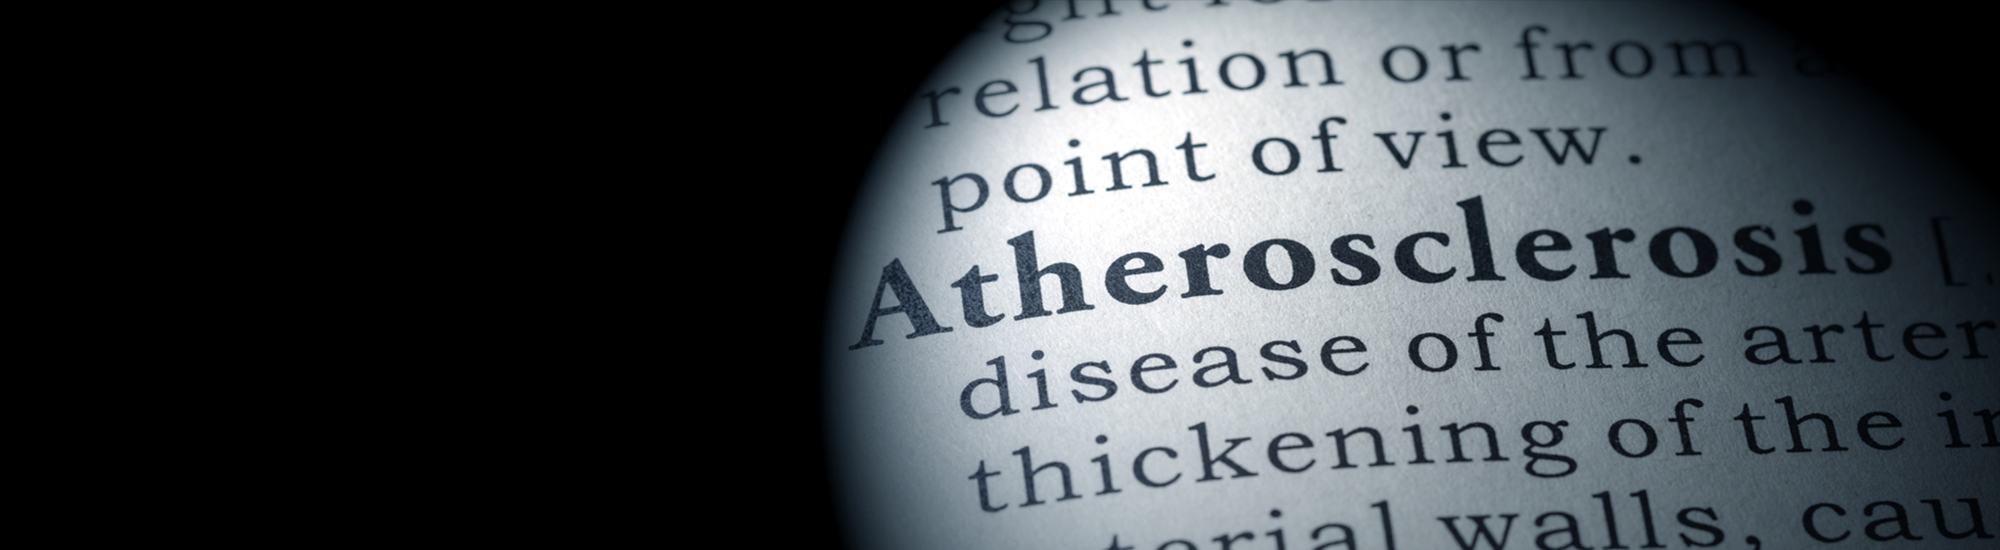 Ayurvedic treatment for Atherosclerosis Diagnosis